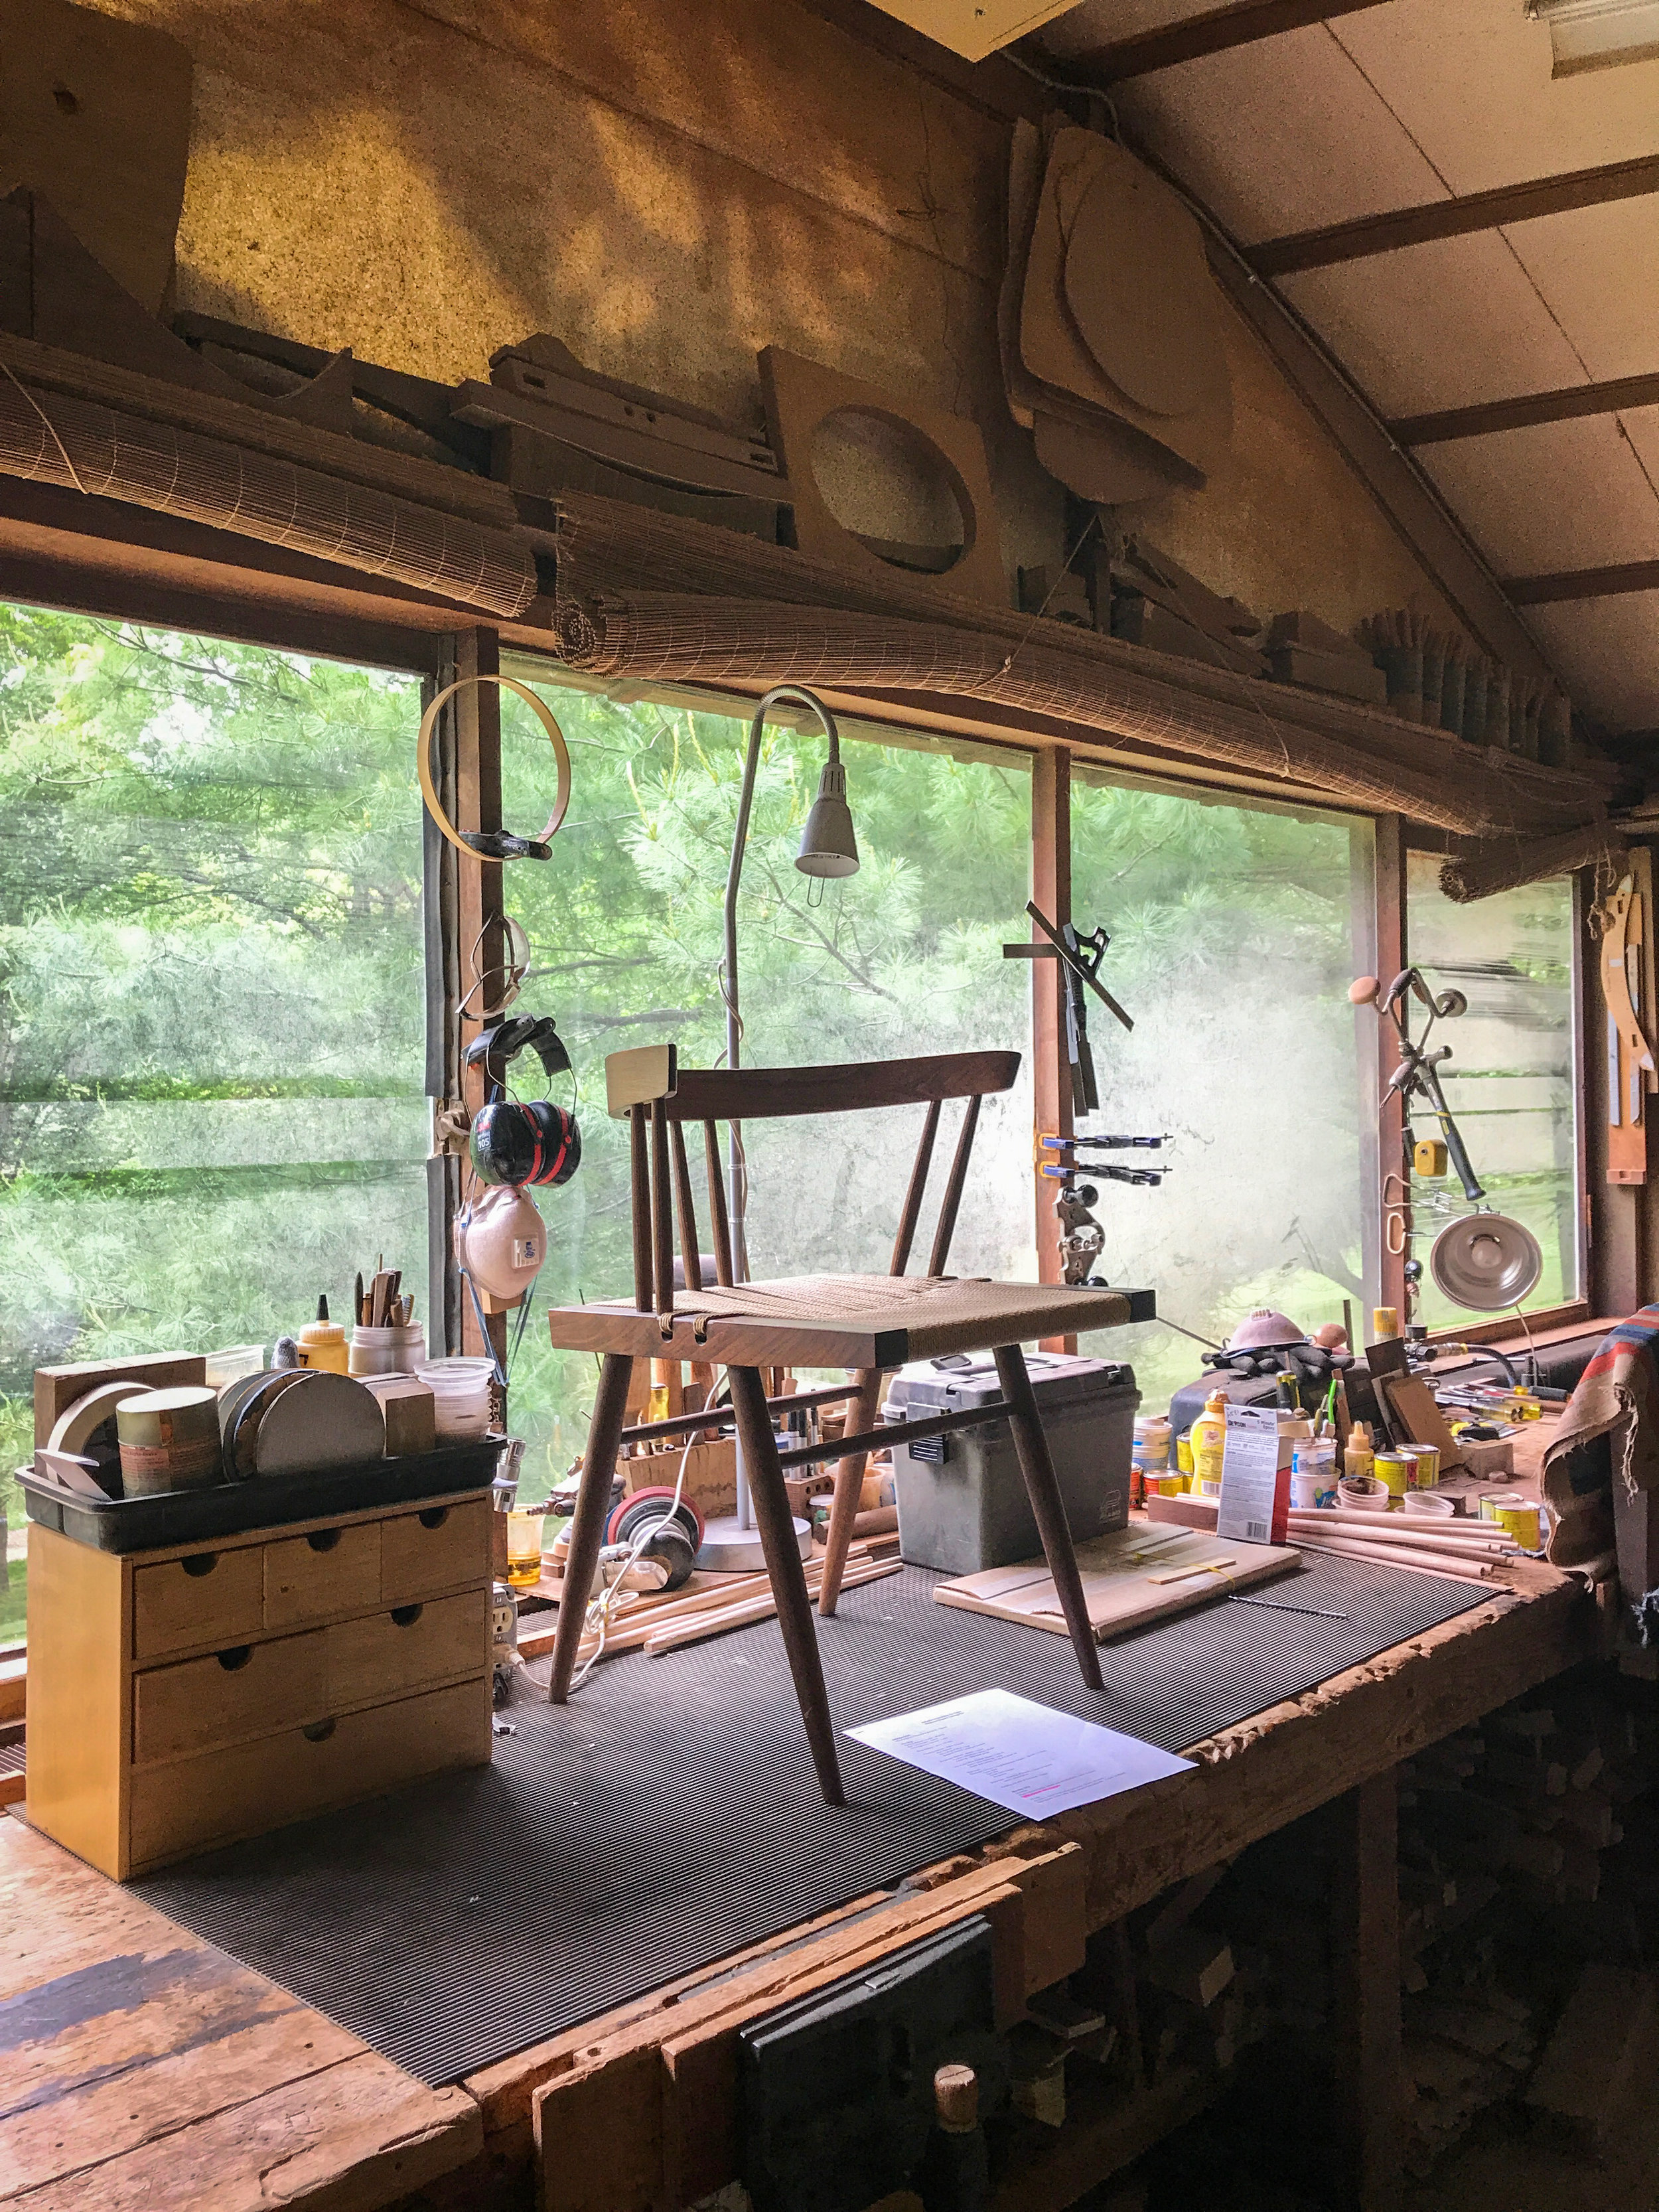 A peek into the Chair Shop